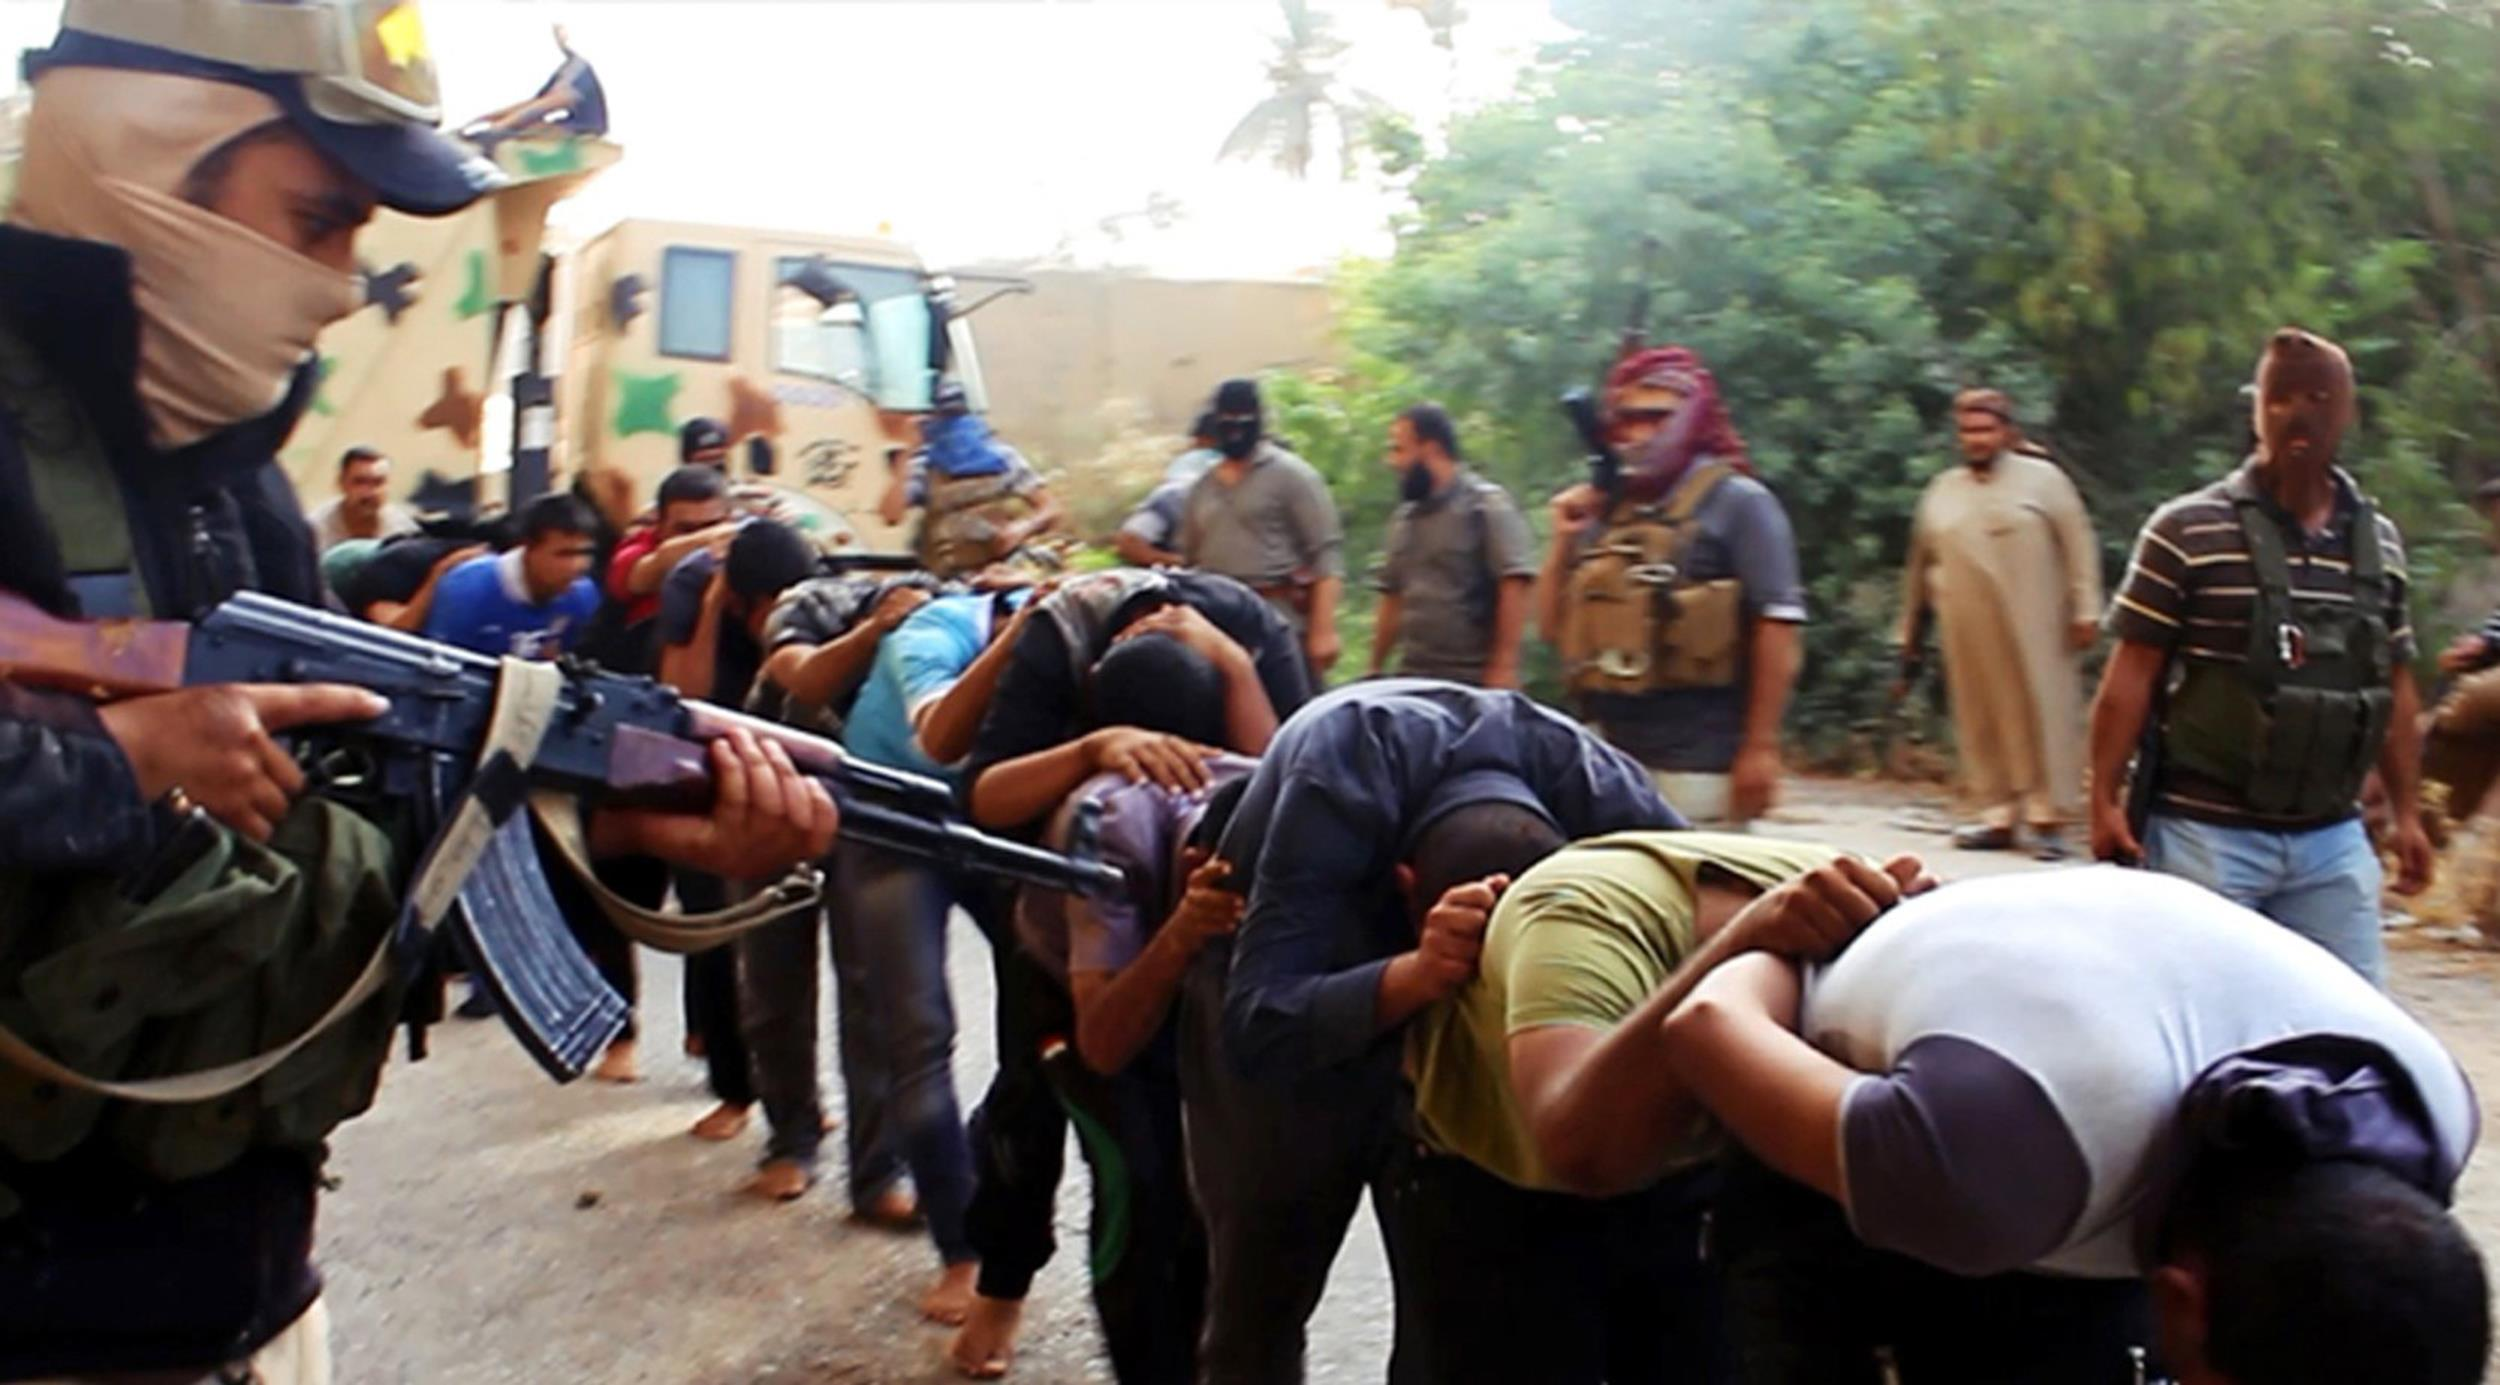 Image: Militants from ISIL lead away captured Iraqi soldiers in plain clothes after taking